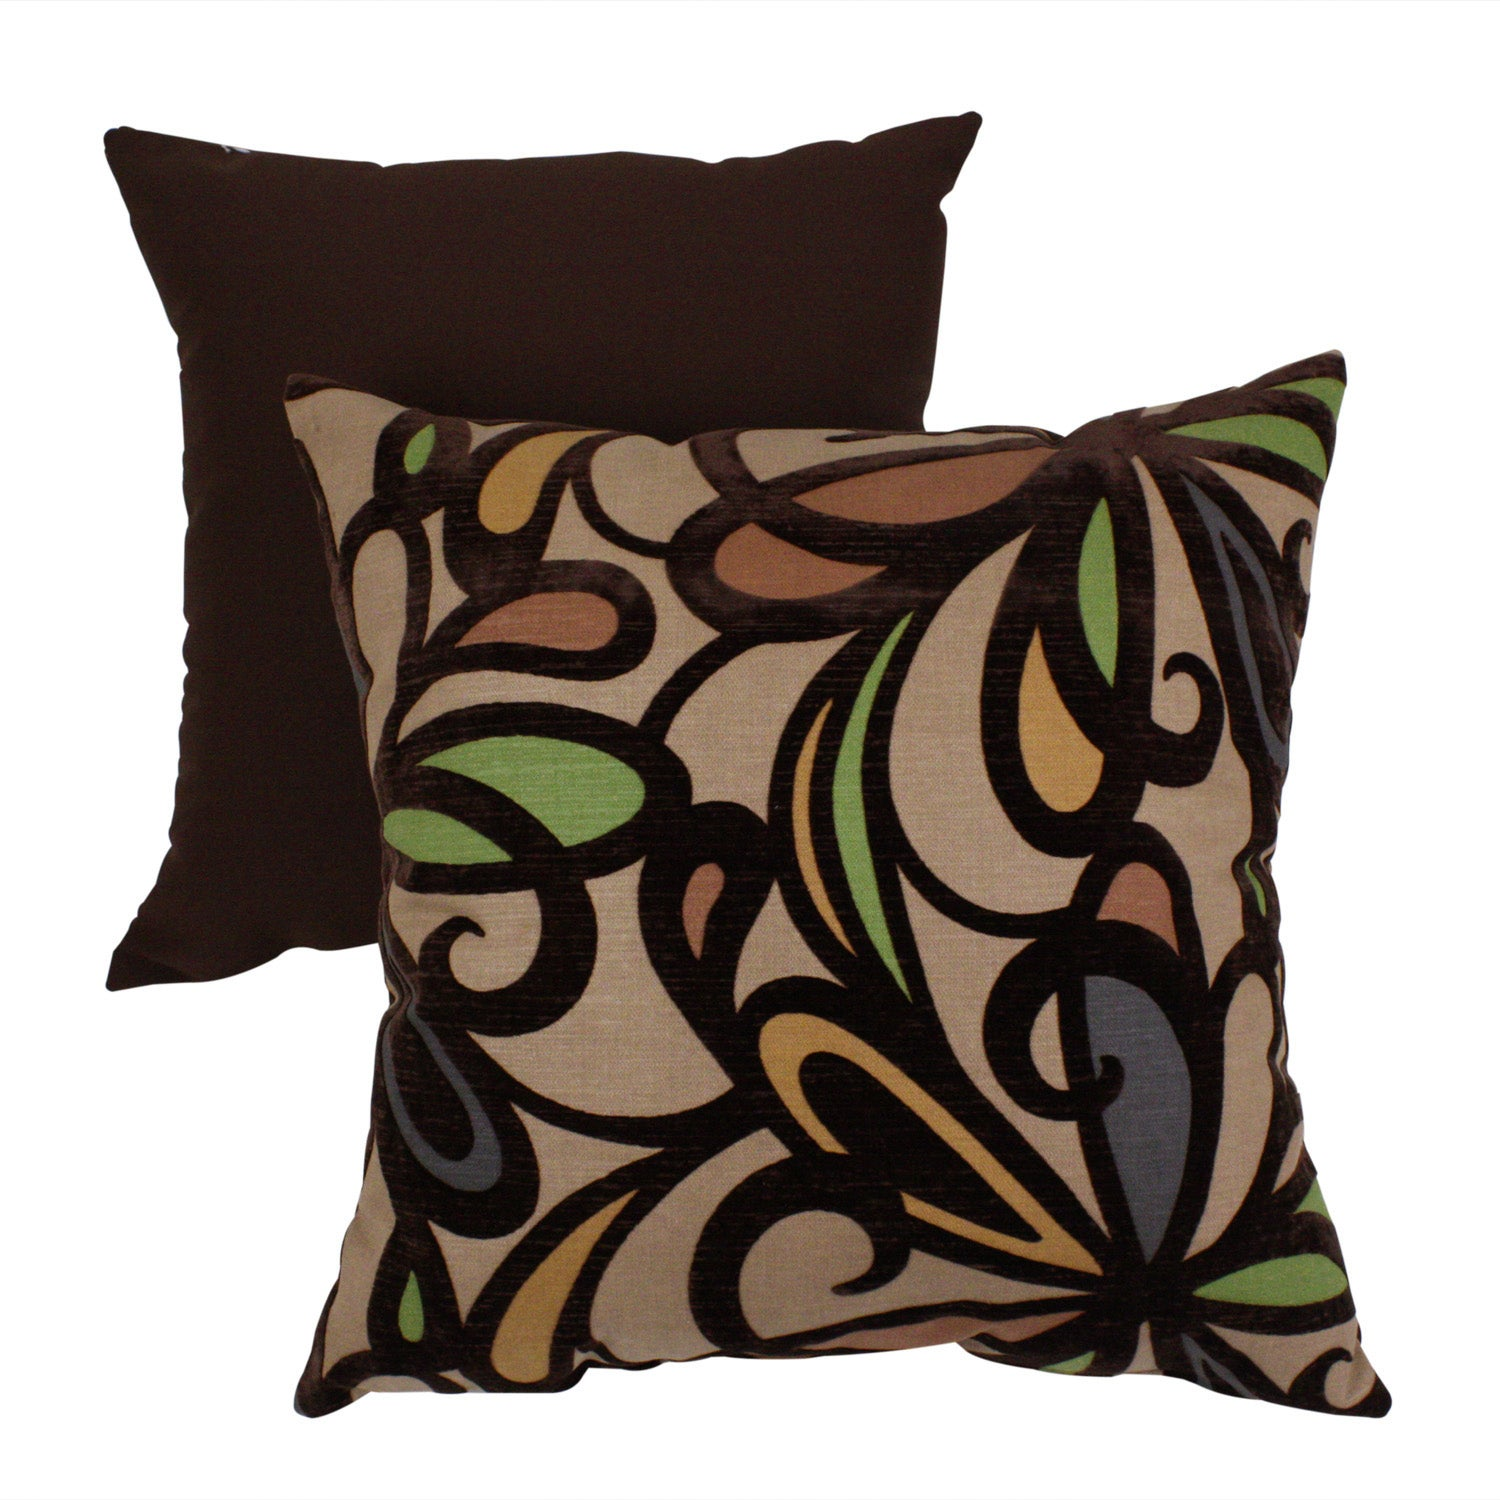 Pillow Perfect Contemporary Floral Flocked Throw Pillow